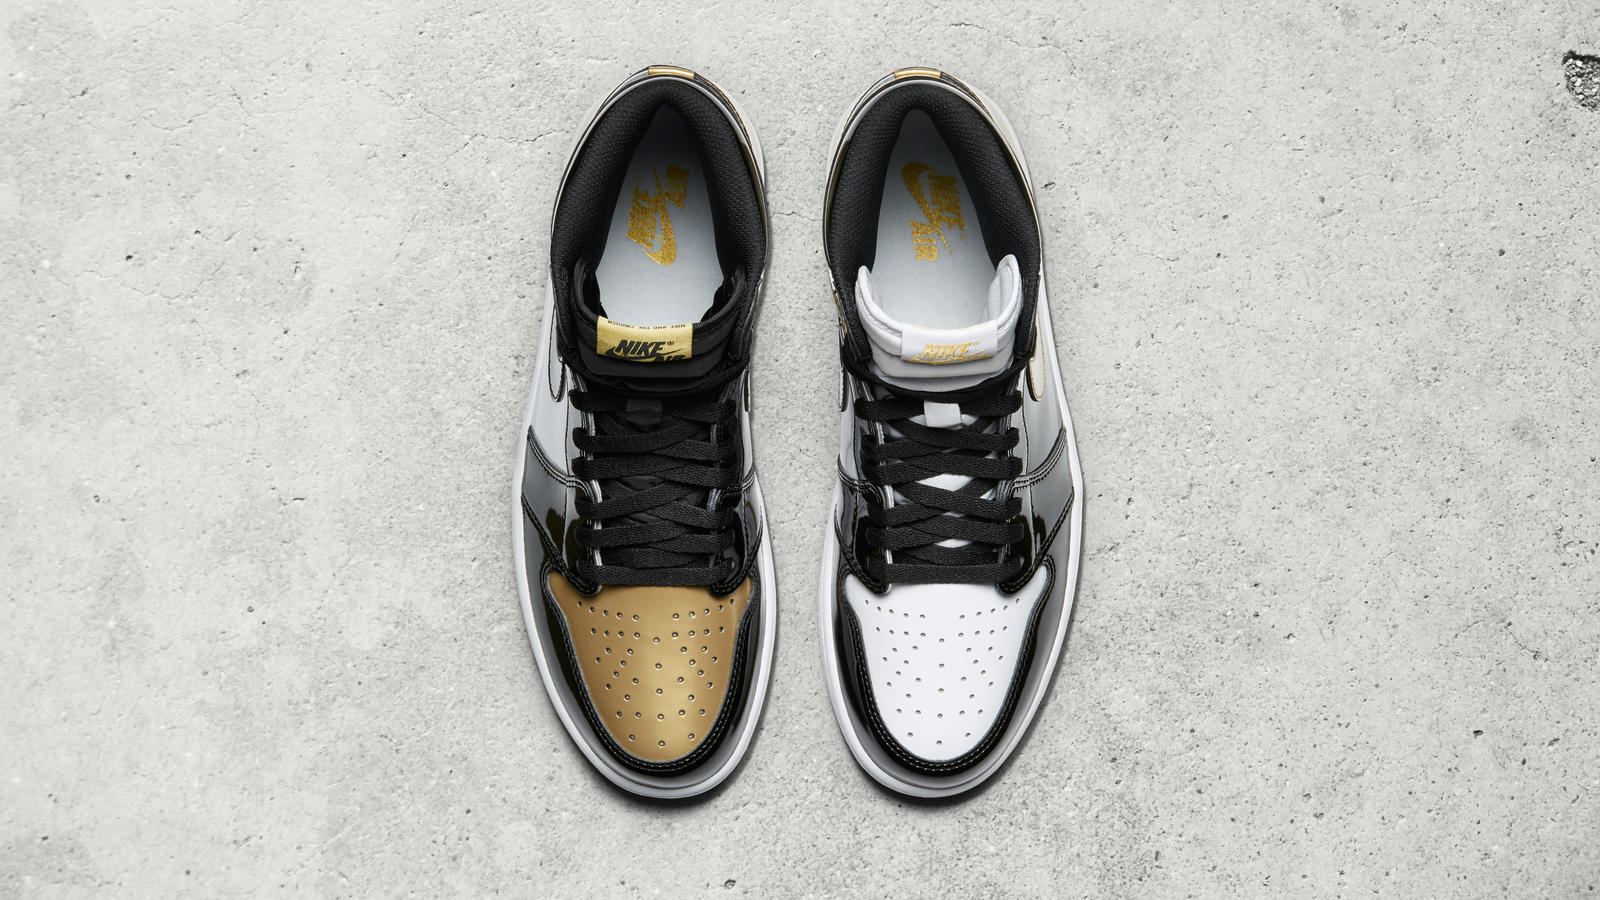 Gold jordan 1 top 3 03 native 1600